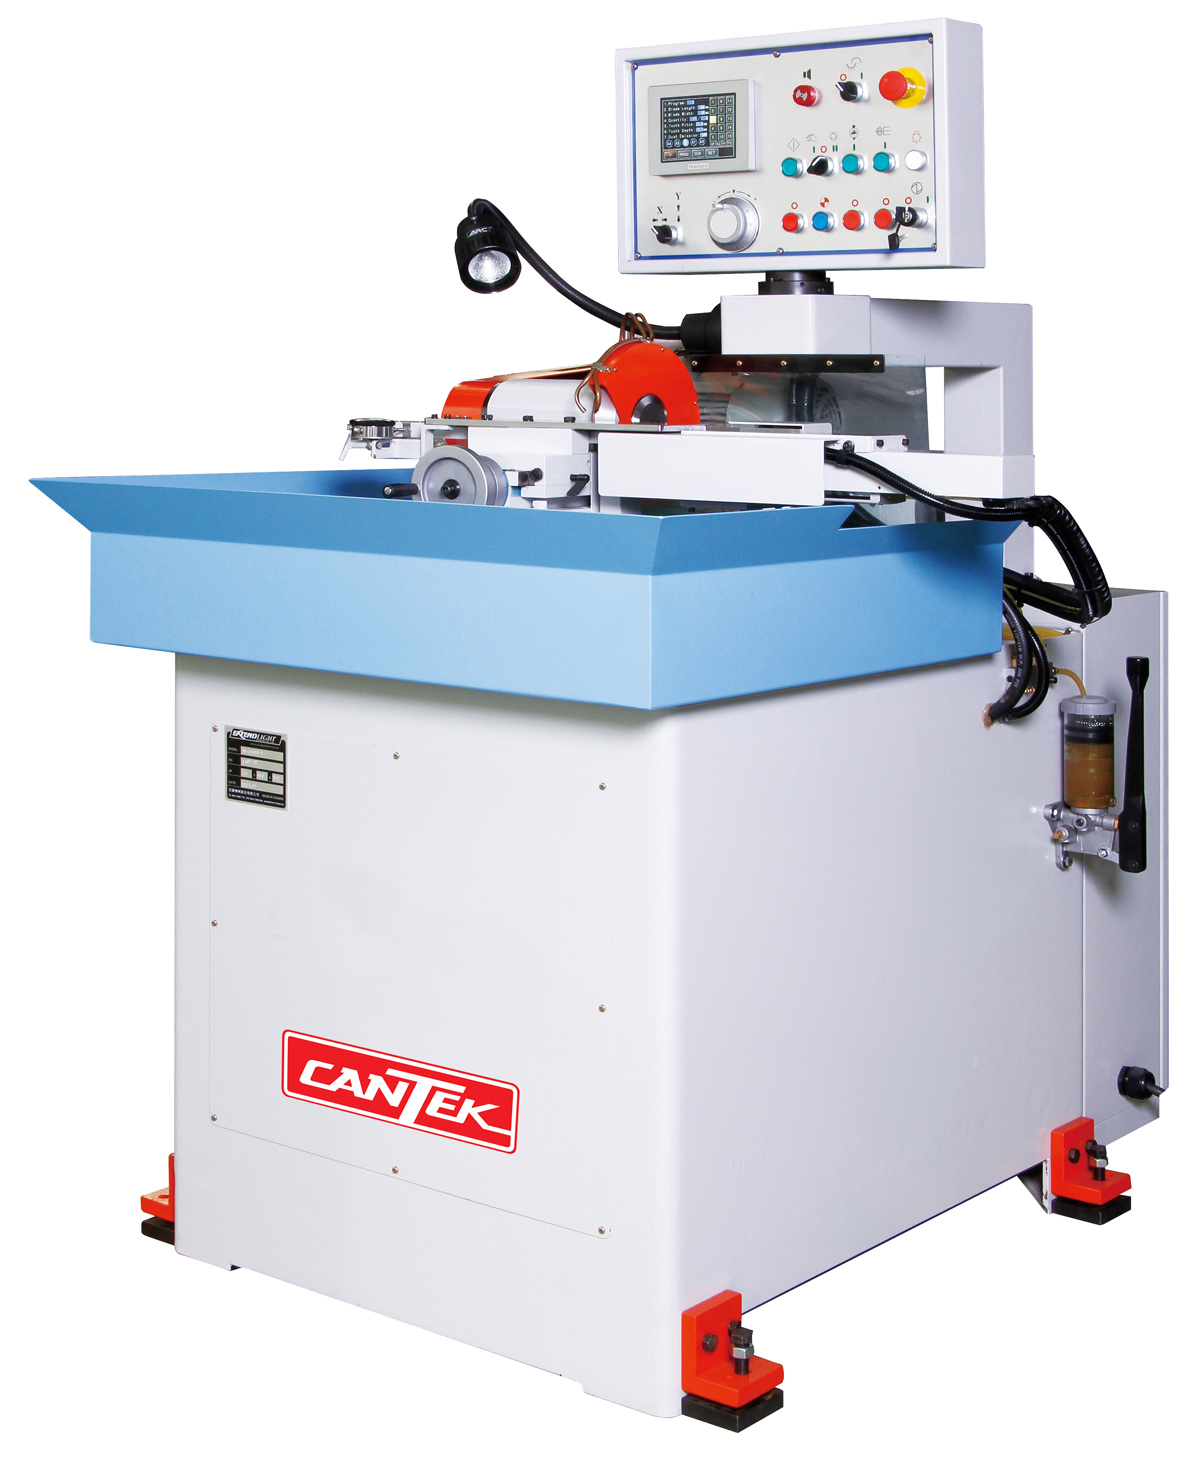 CANTEK SG-65 Automatic Frame Saw Blade Sharpening Machine | CAN